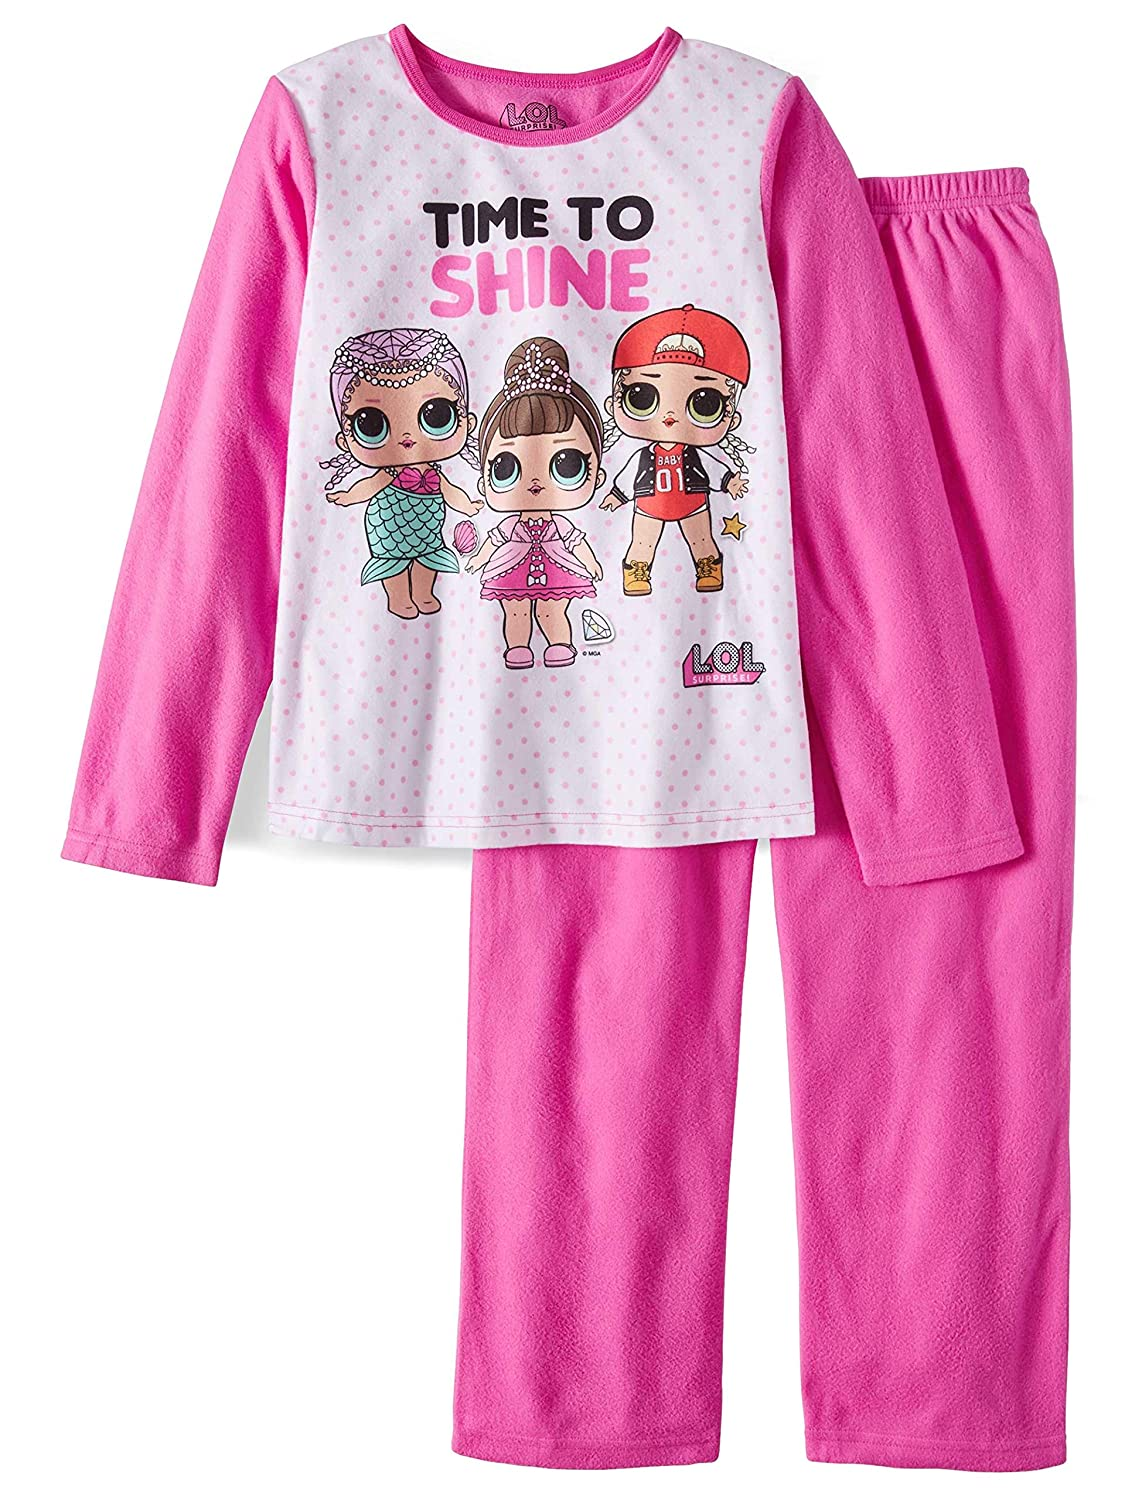 L.O.L SURPRISE 2 Piece Girls Sleepwear Pajama Set